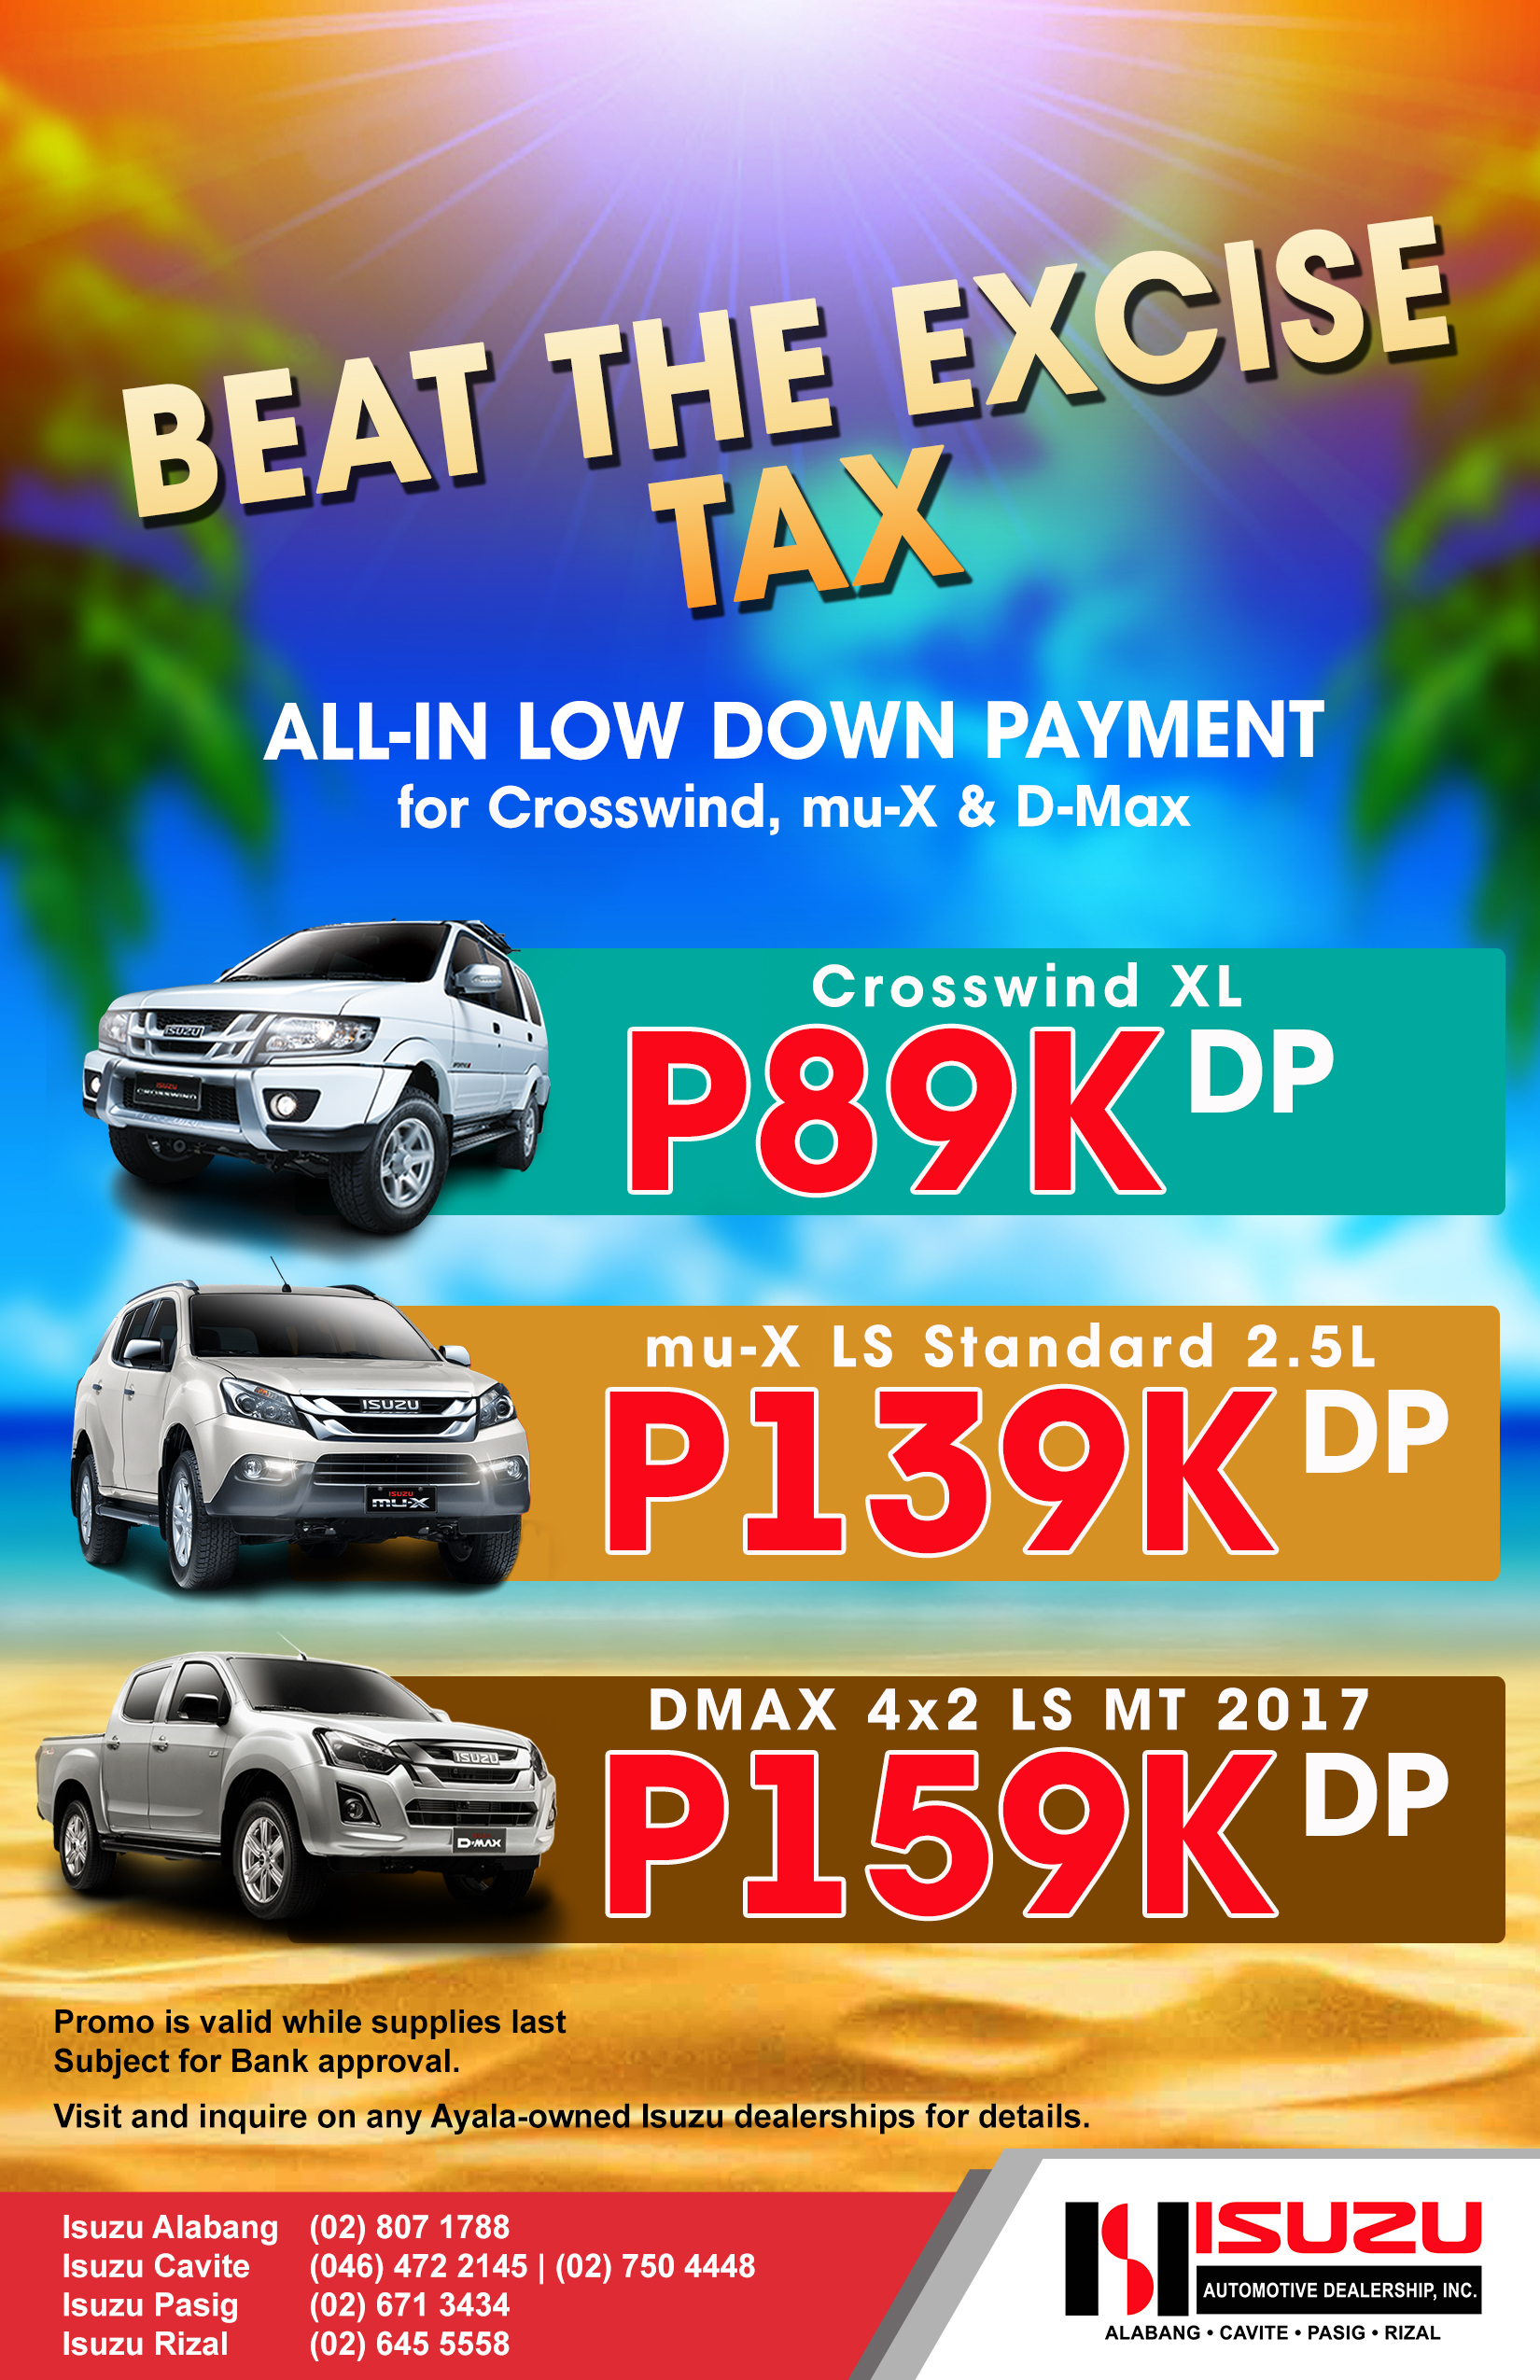 Isuzu Auto Dealer Ac Automotive Beat The Excise Tax